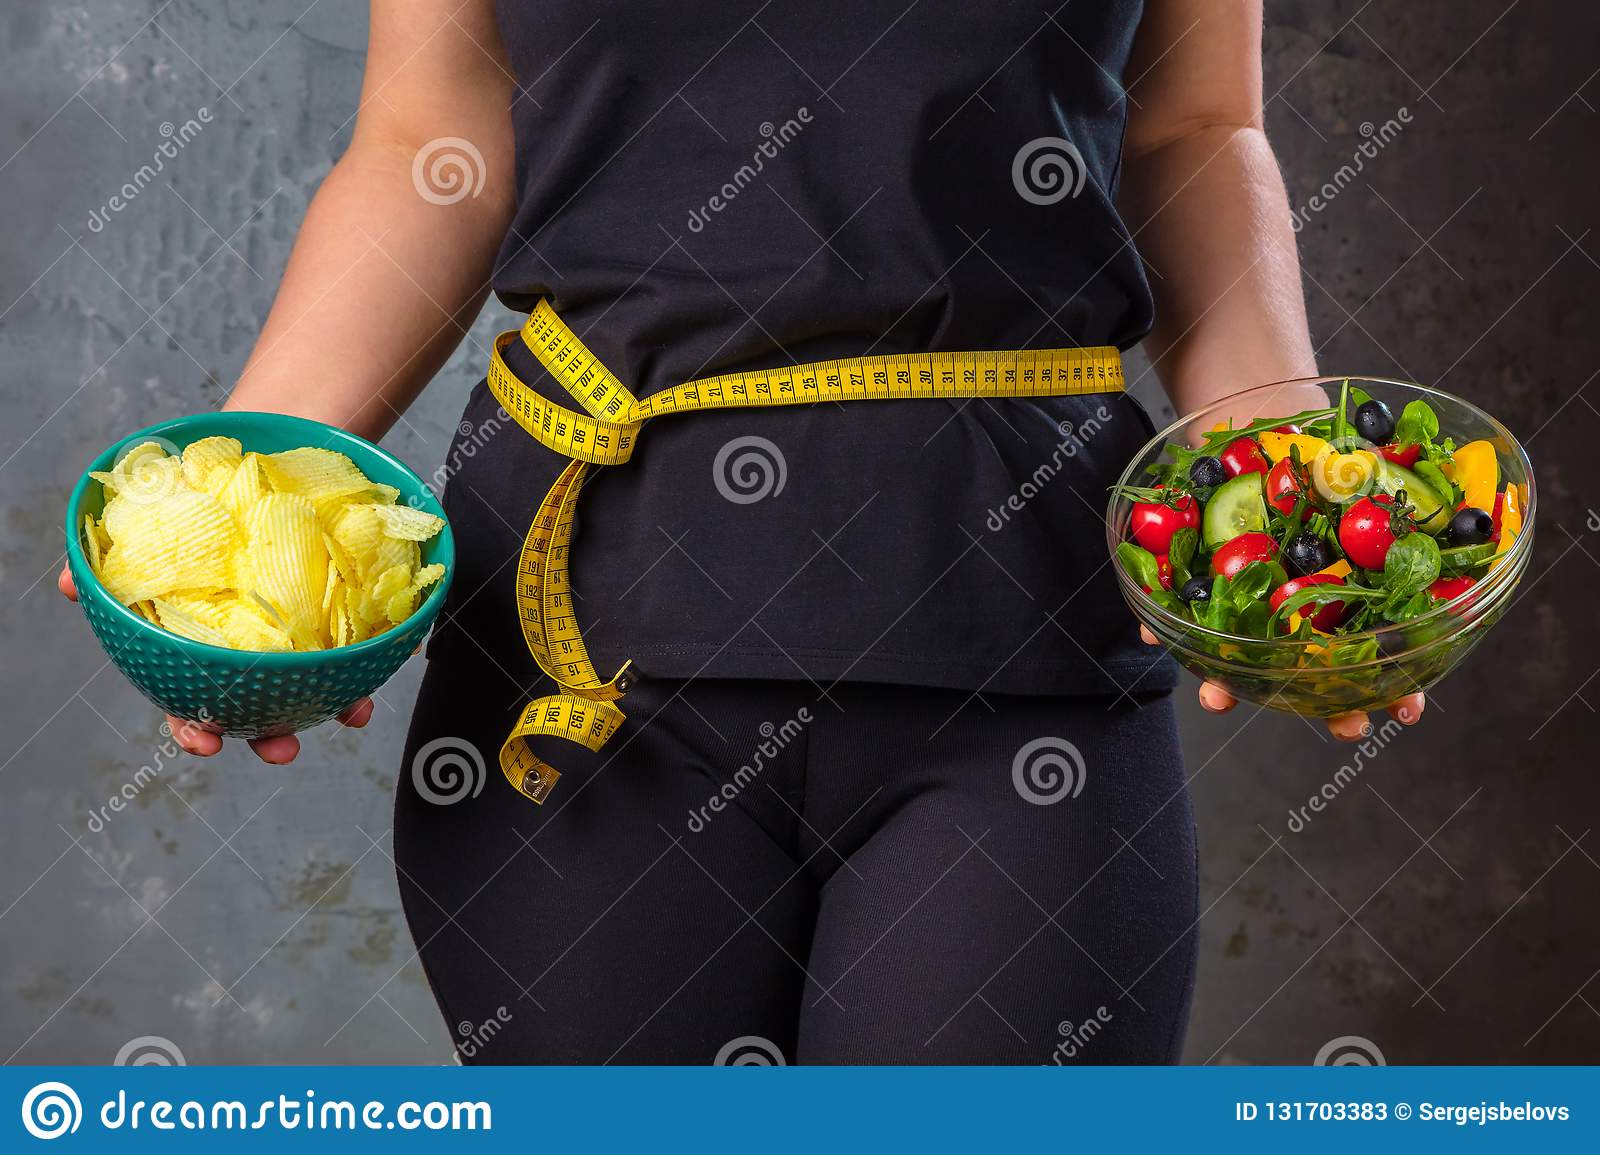 Healthy young woman looking at healthy and unhealthy food, trying to make the right choice